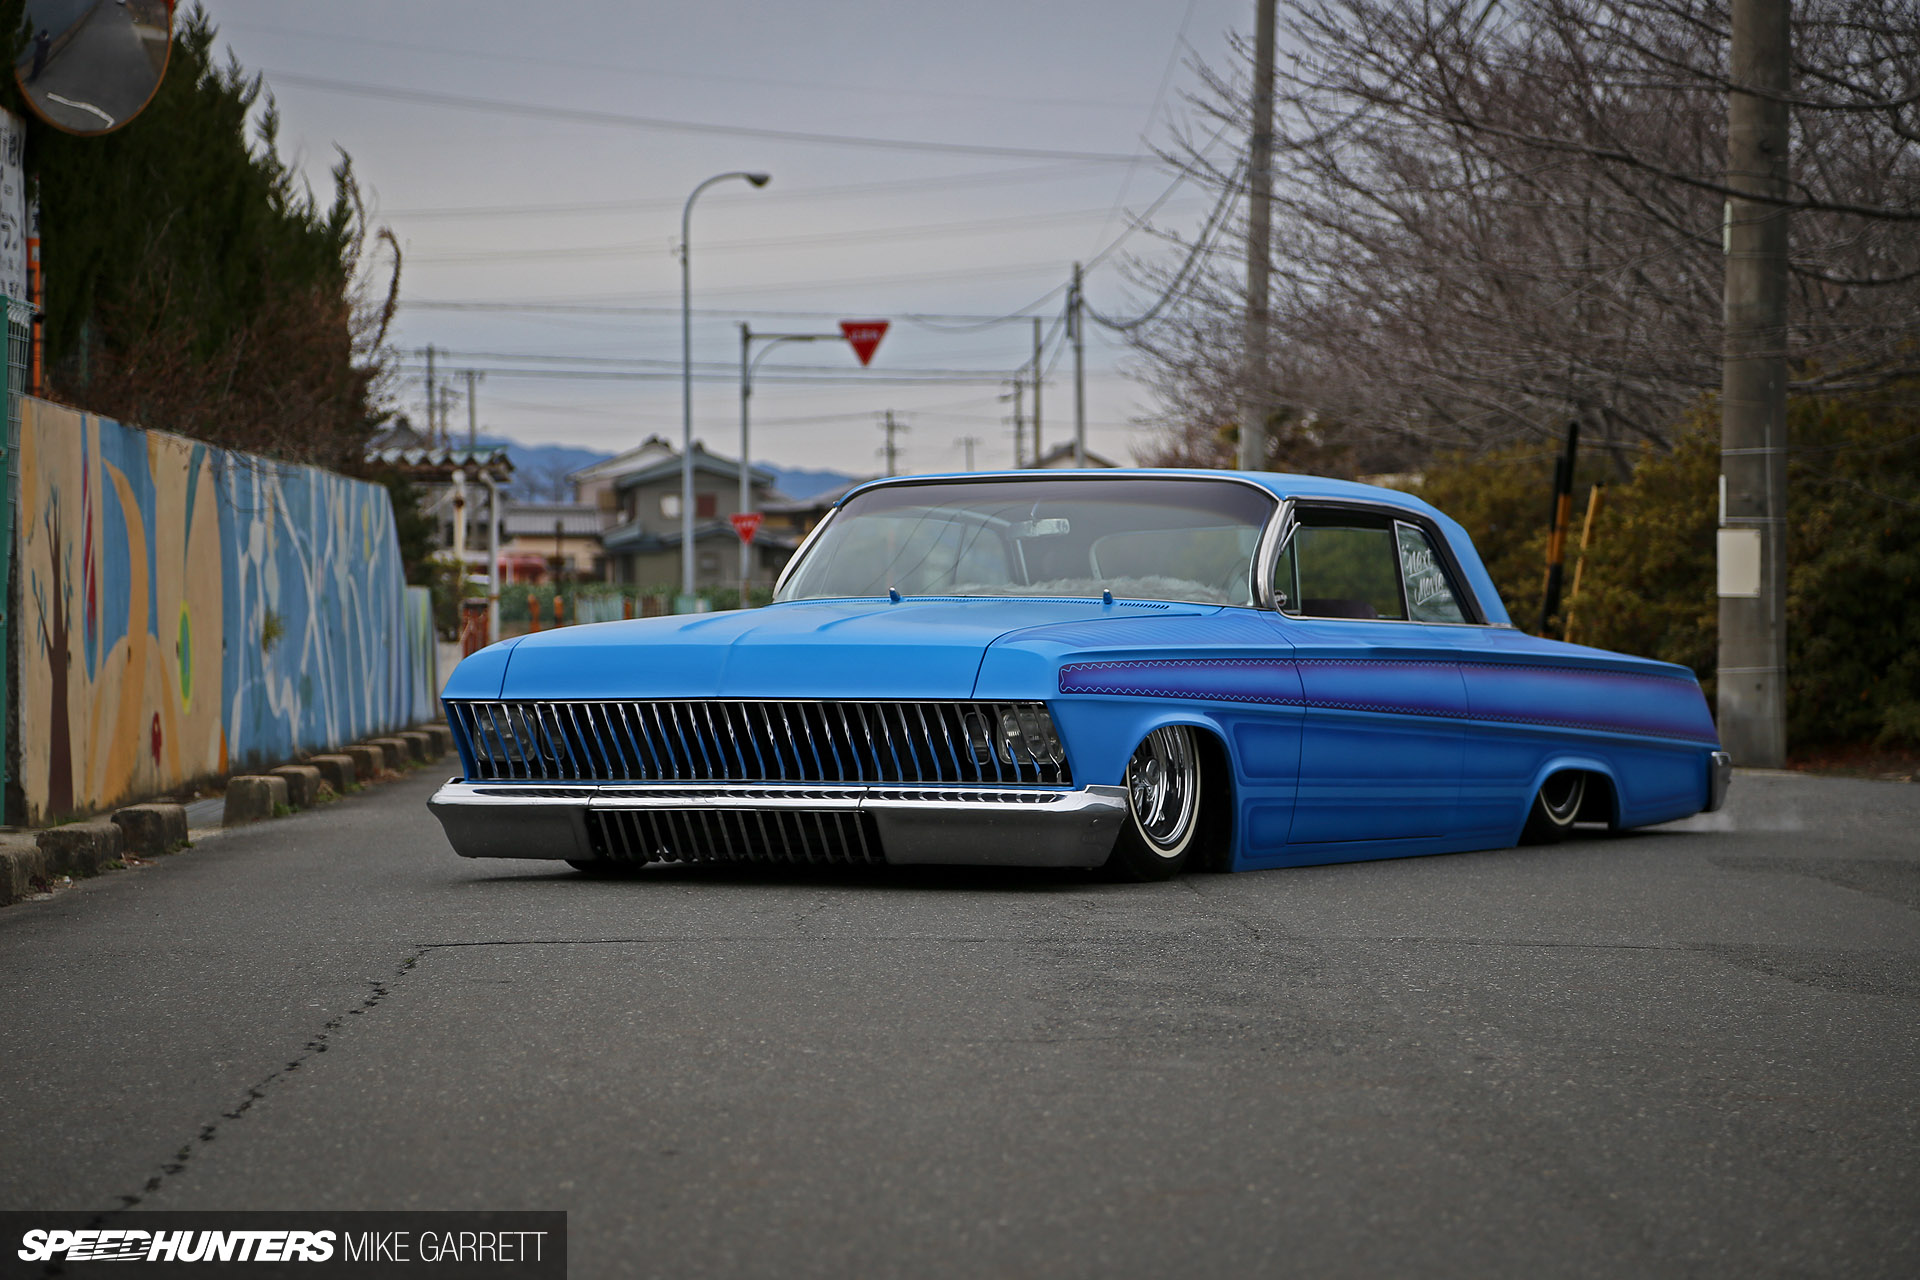 Dream Car Wallpaper Impala Ichiban La Street Style In Japan Speedhunters